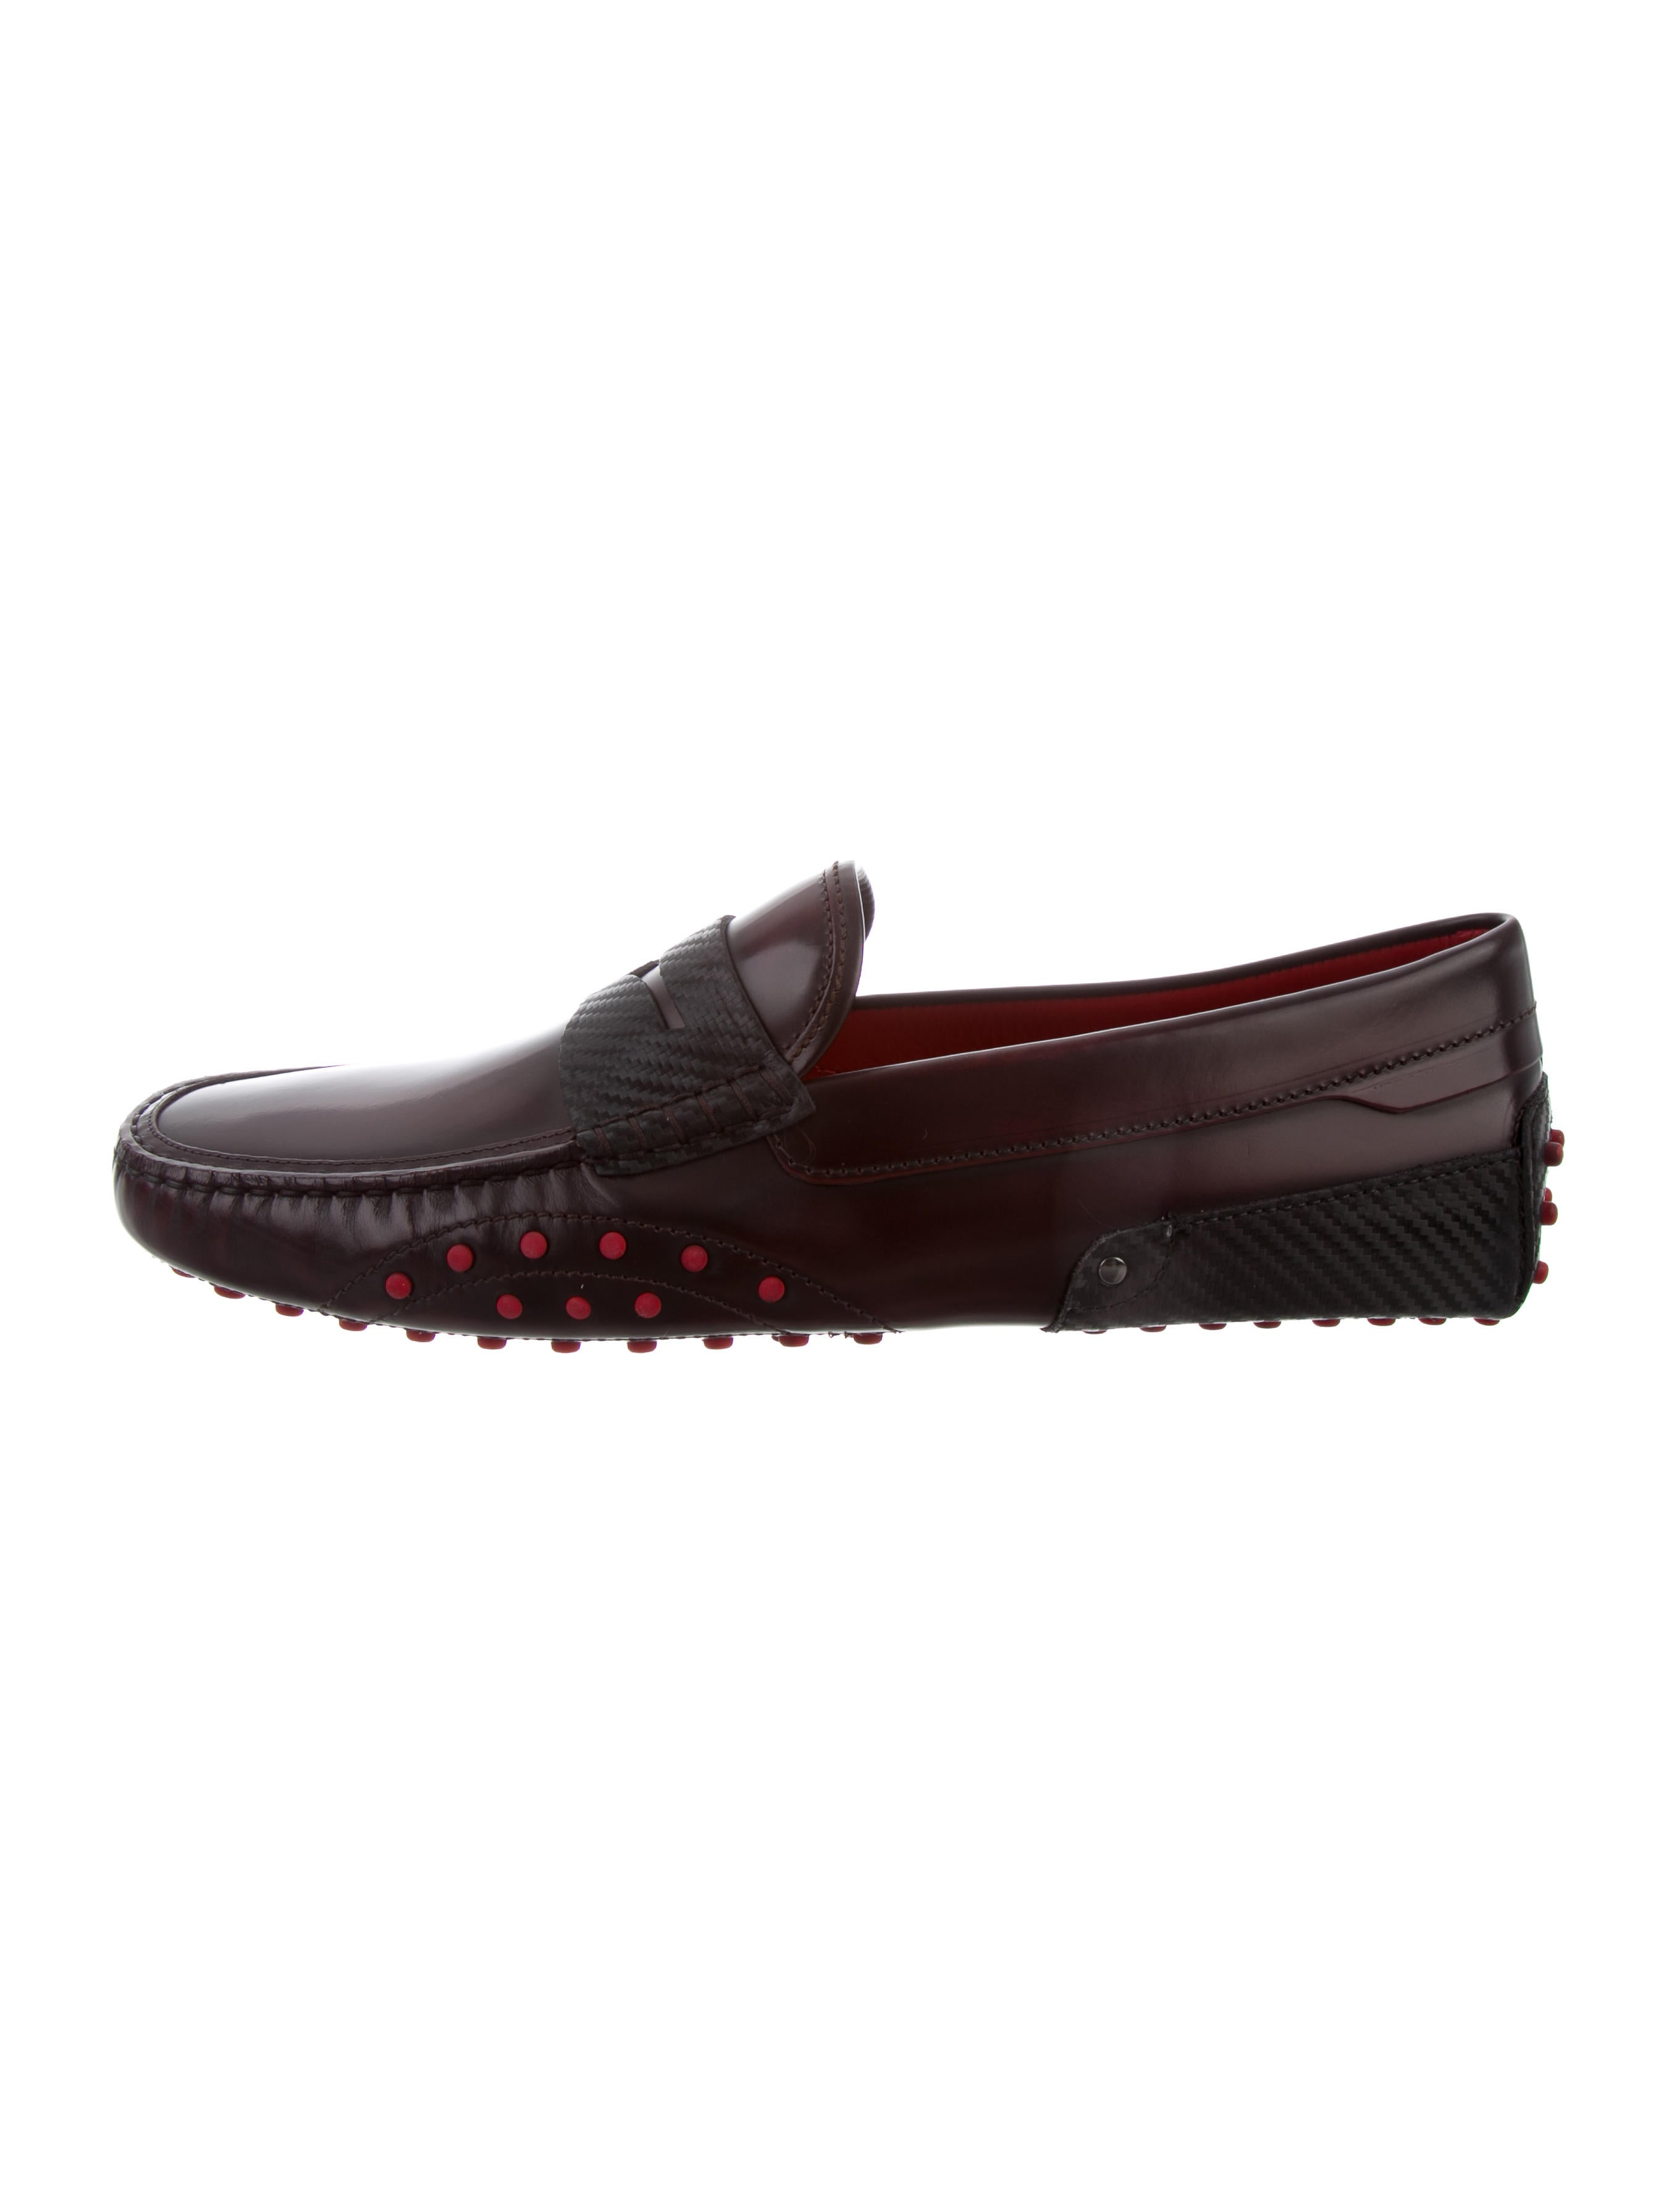 official site cheap online Tod's Leather Penny Loafers w/ Tags outlet official site outlet find great outlet affordable EPwTMCpQyr